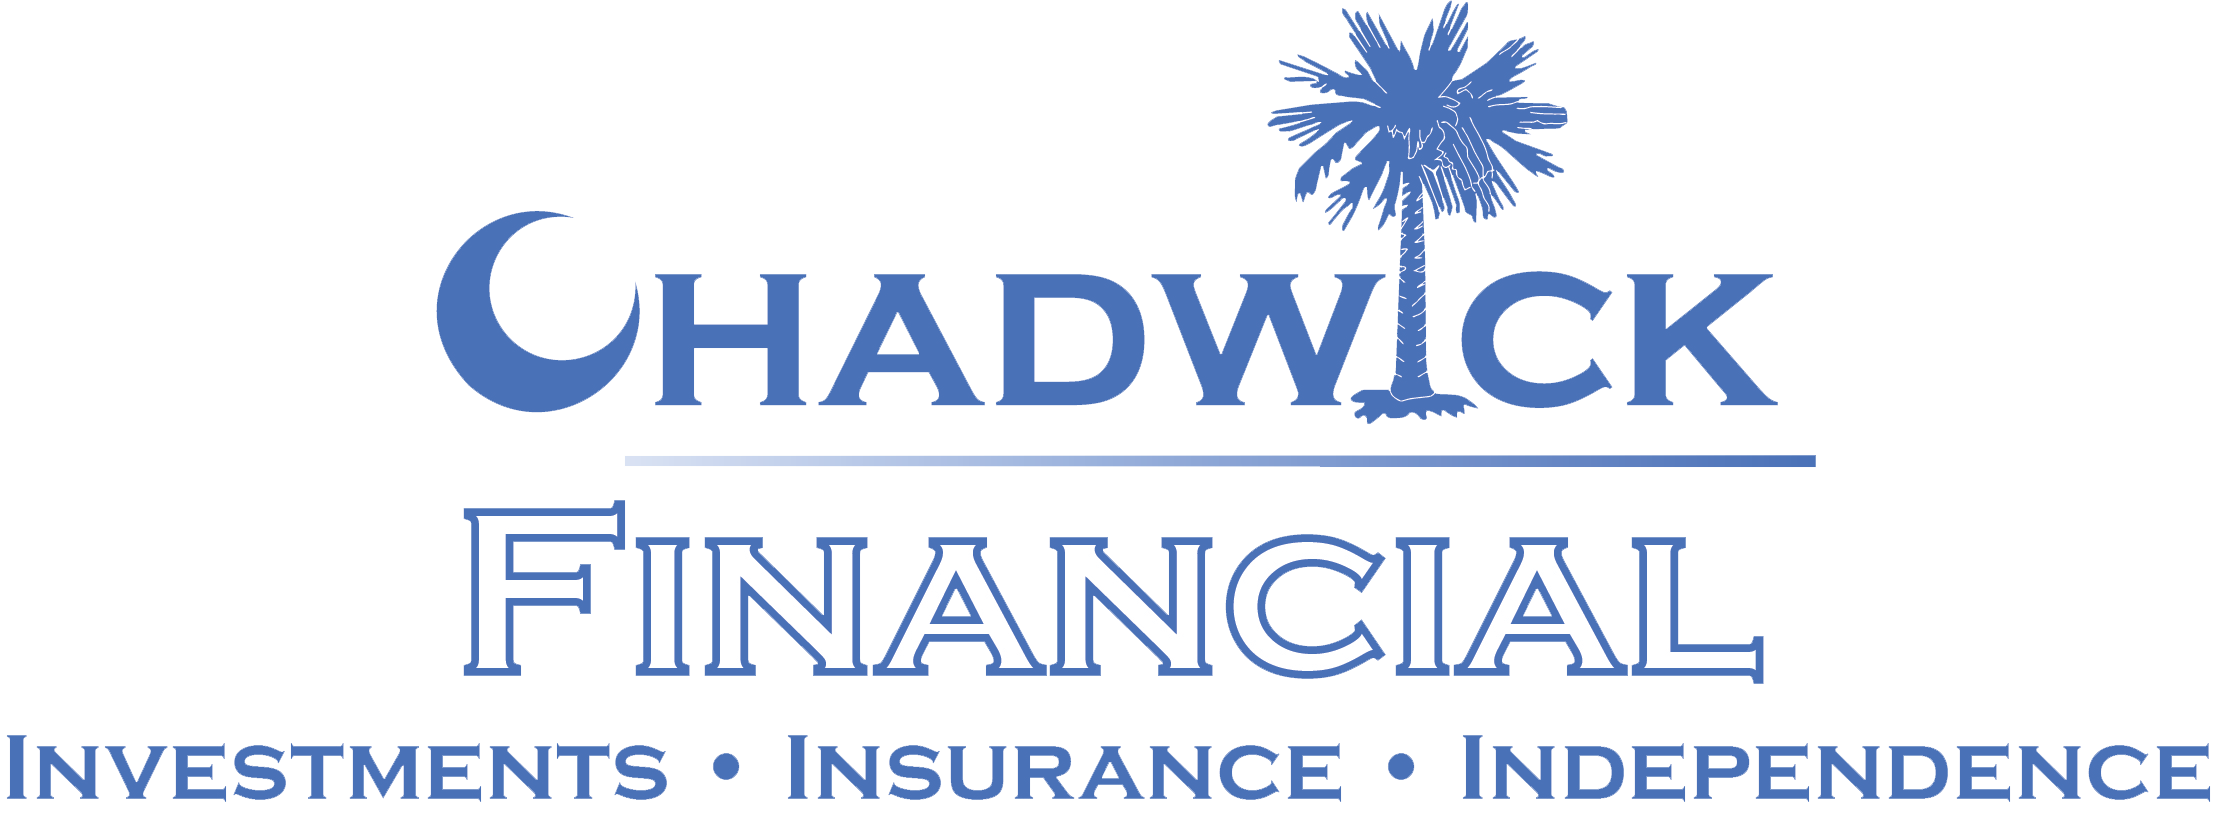 Chadwick Financial